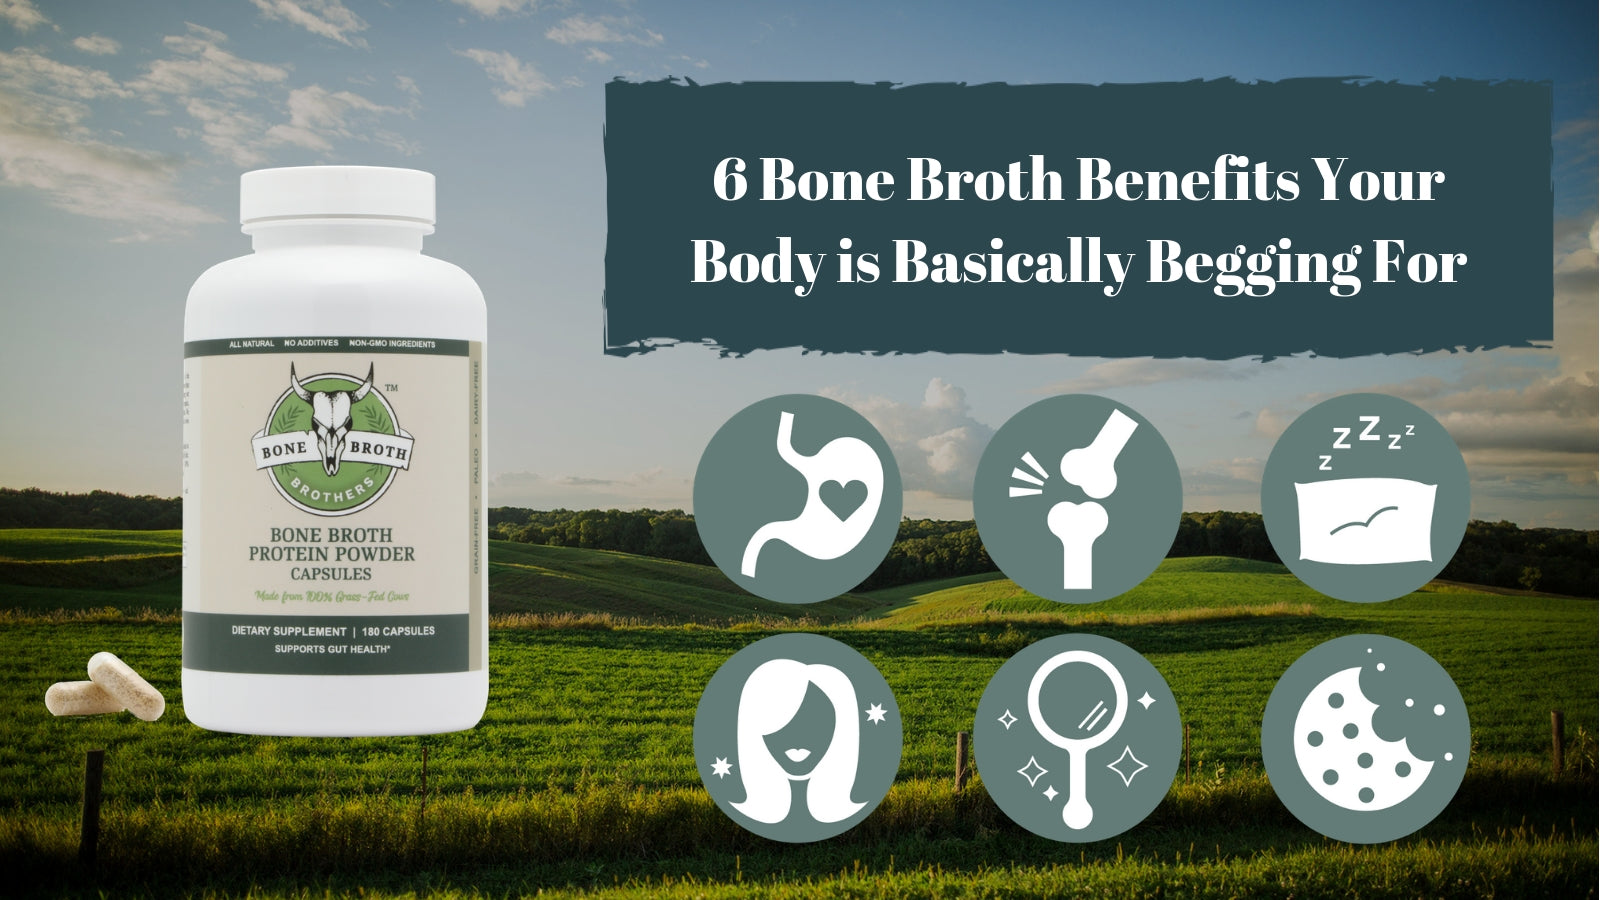 Bone Broth Benefits Capsules